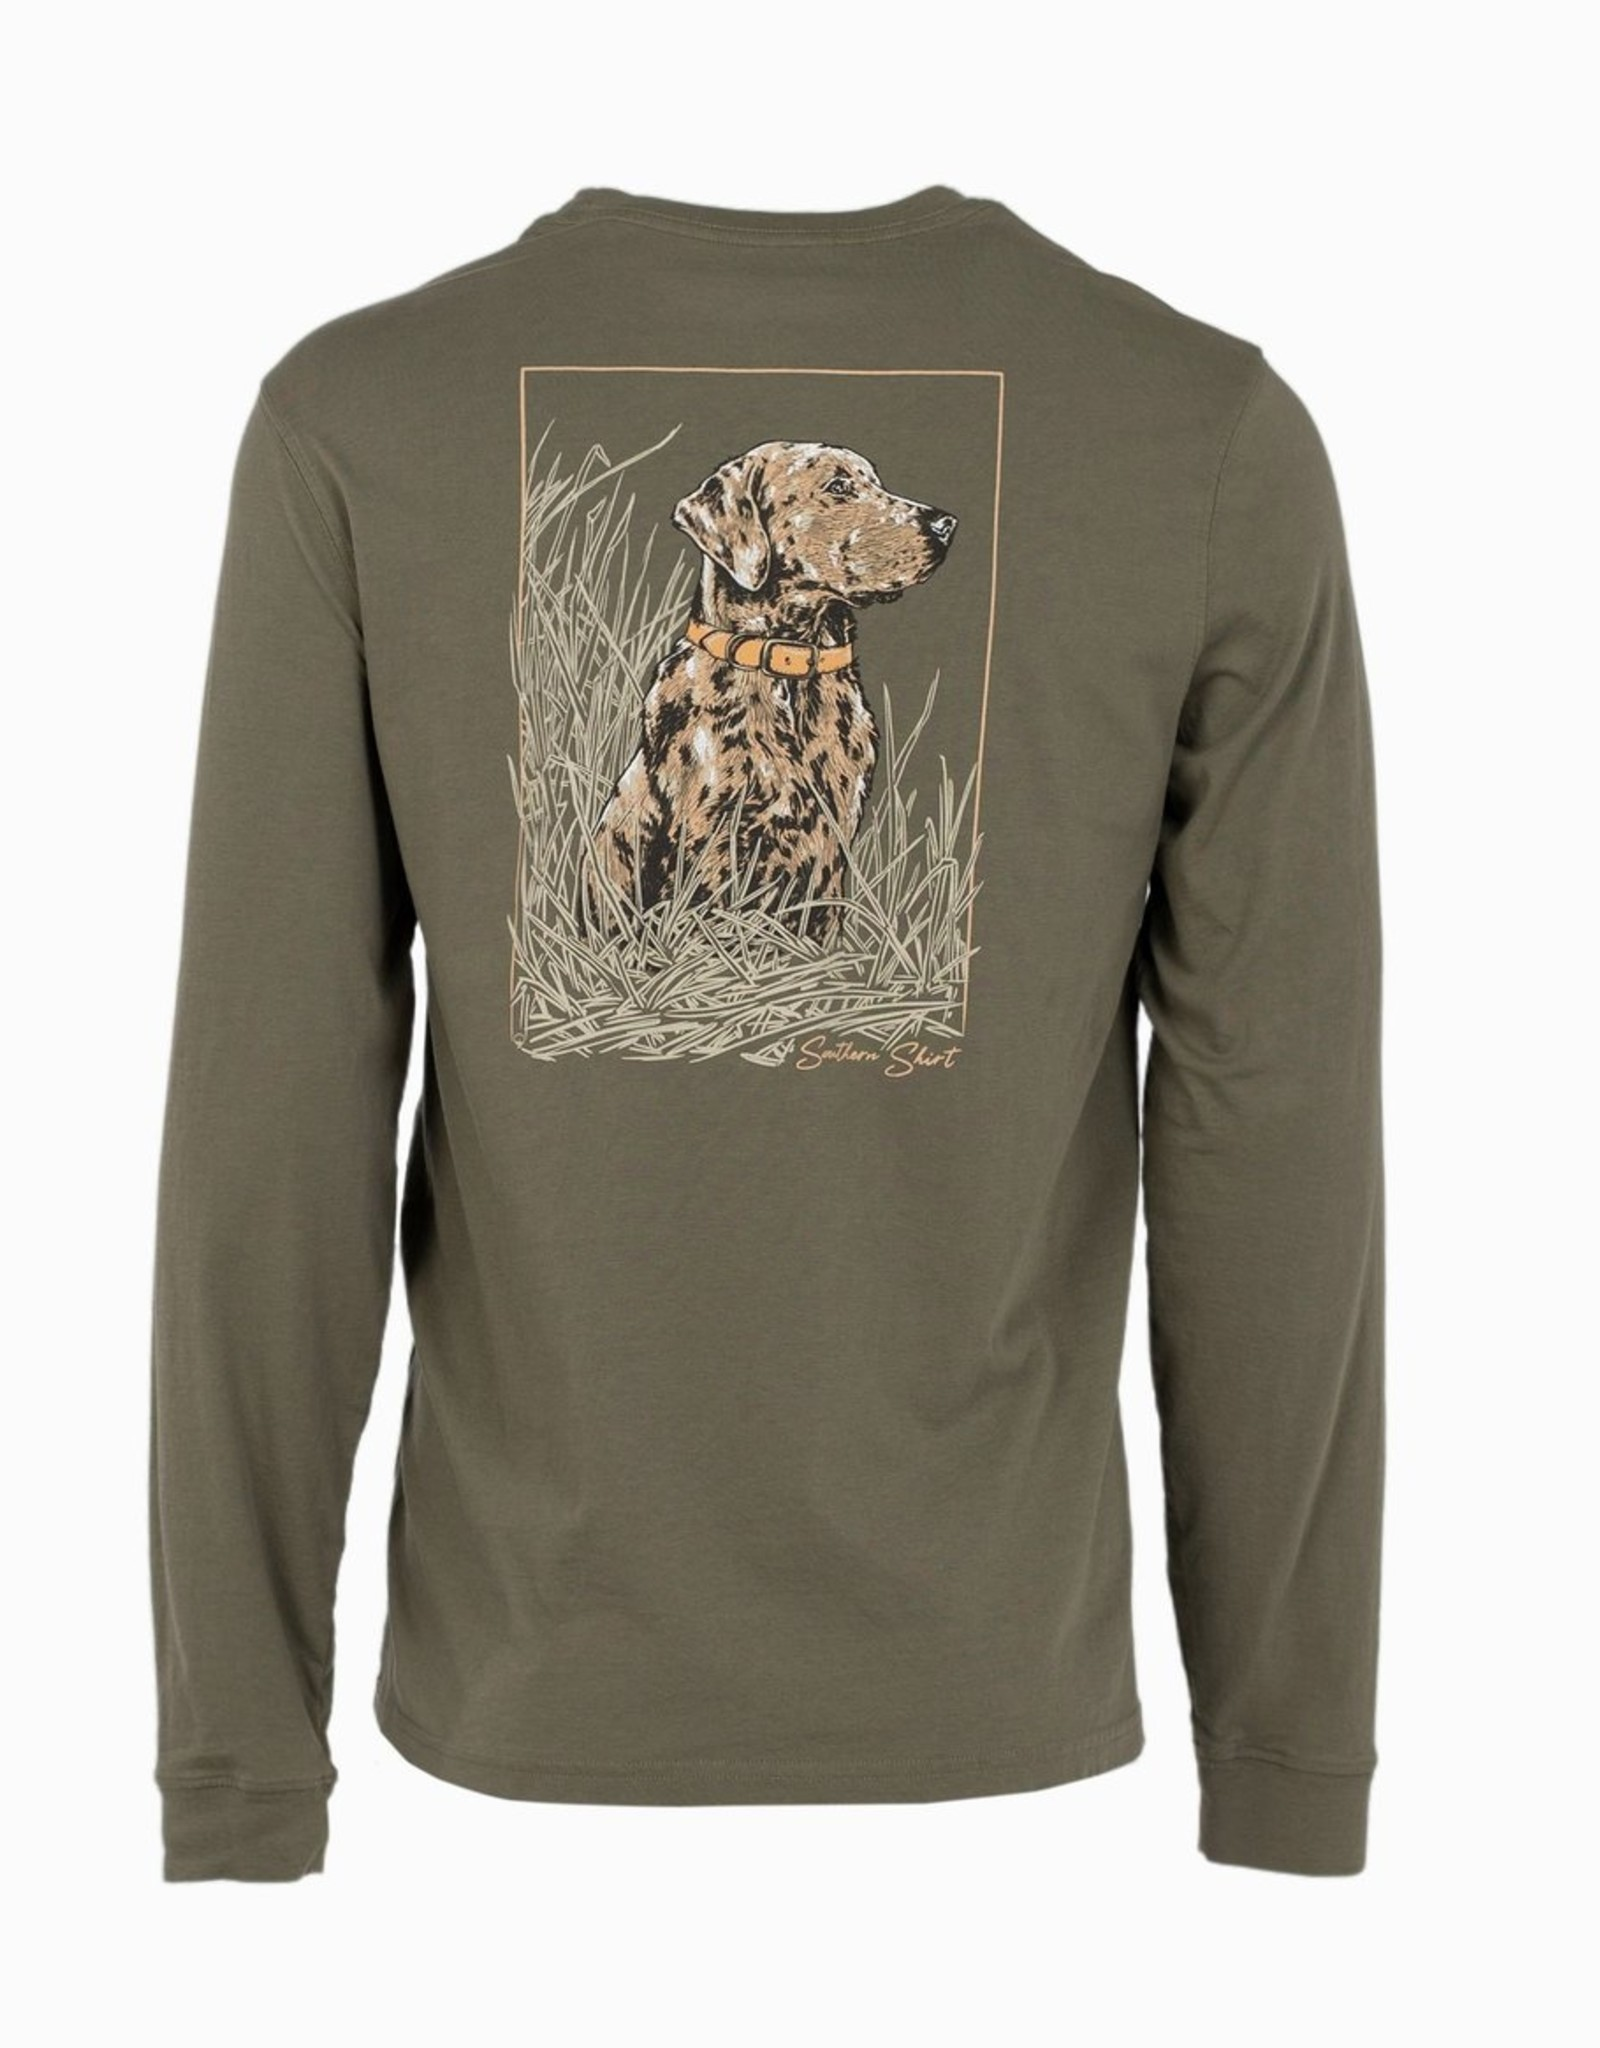 Southern Shirt Eyes in the Field Tee LS